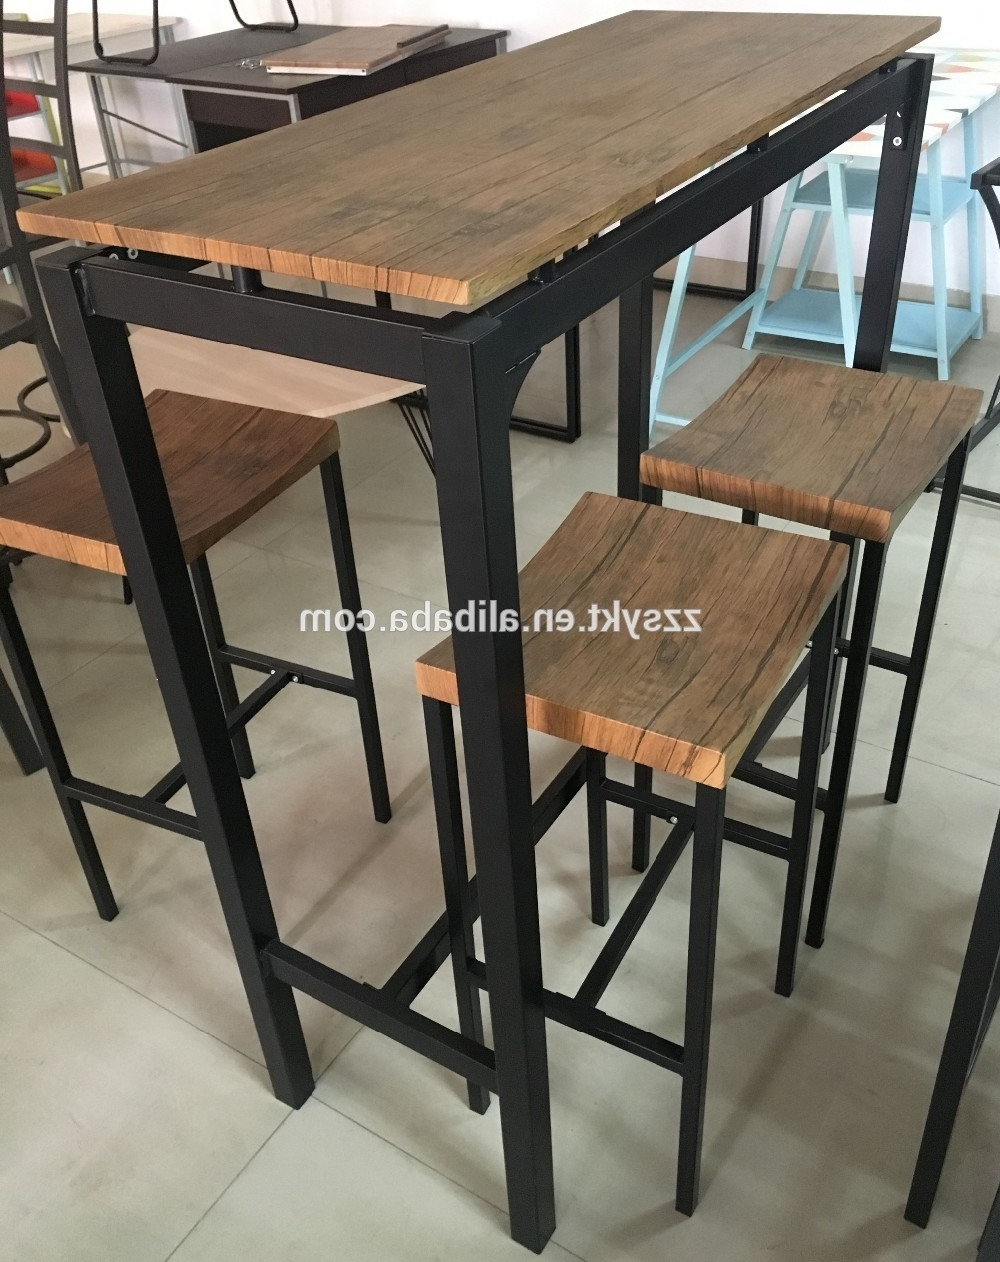 Dining Tables With Metal Legs Wood Top Pertaining To 2018 Modern Lounge Pub Furniture Metal Legs Frame Wood Top Bar Dining (Gallery 19 of 25)